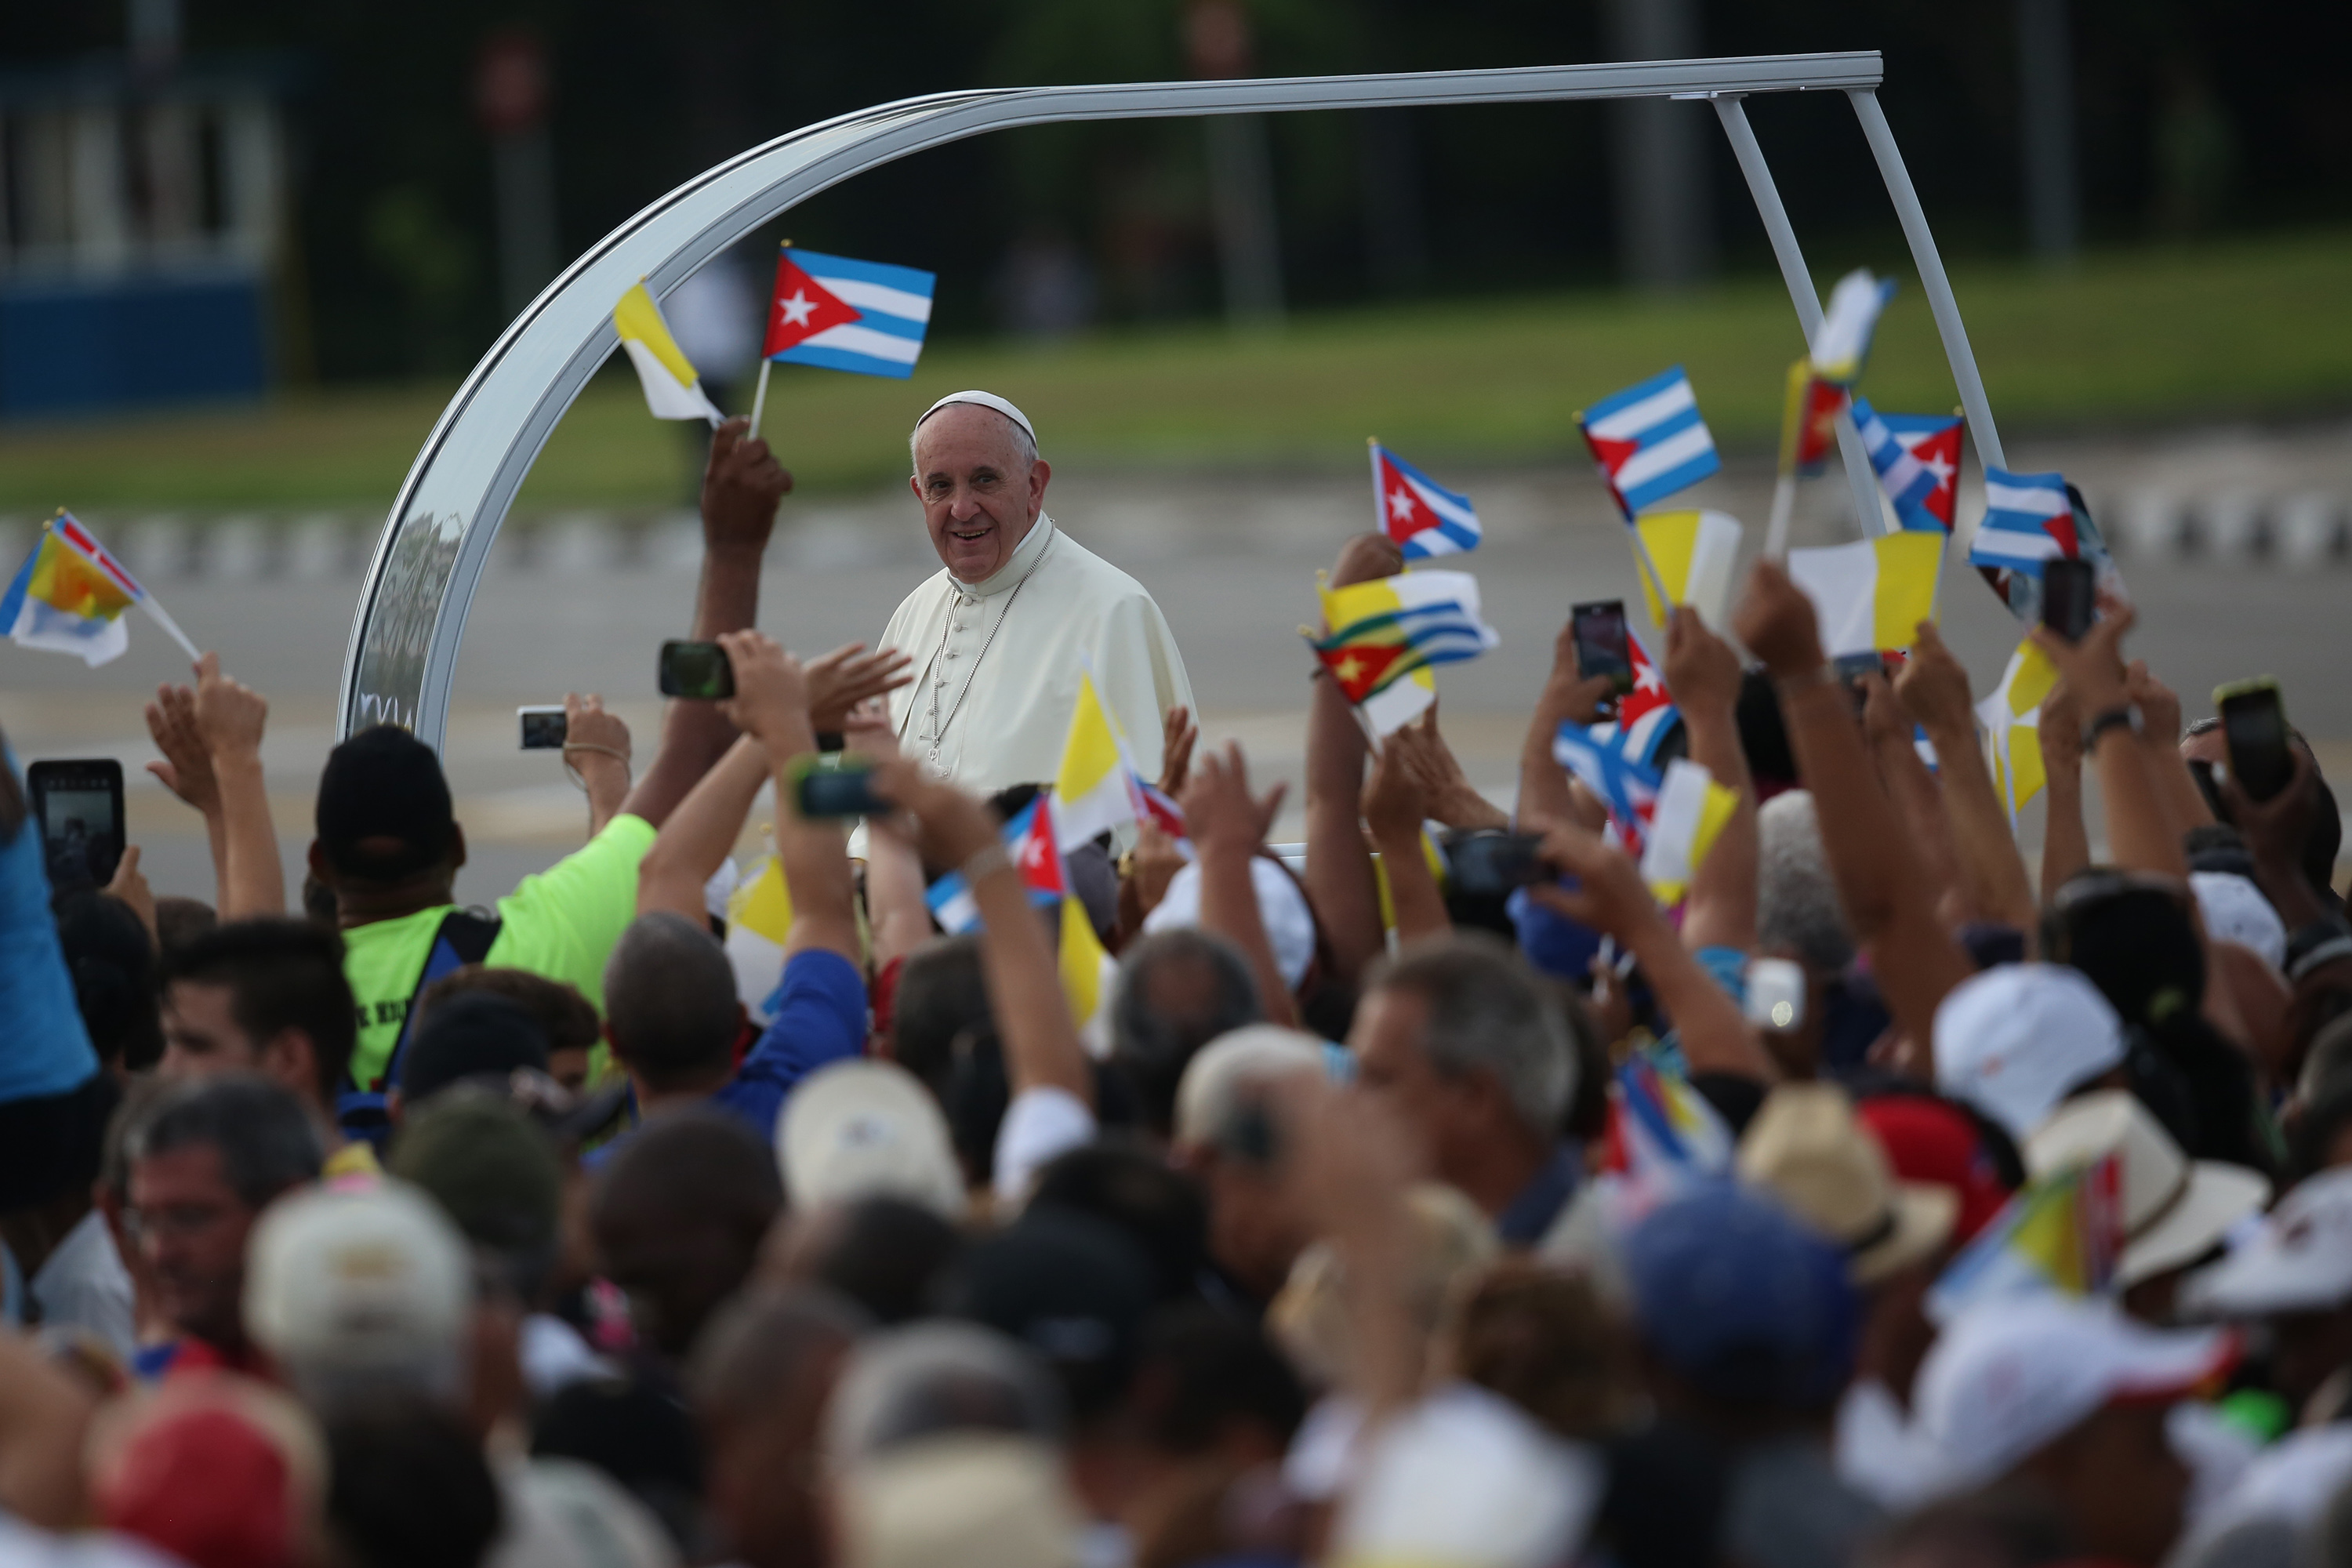 HAVANA, CUBA - SEPTEMBER 20: People wave Cuban and Papal flags as Pope Francis passes by as he arrives to perform Mass on September 20, 2015 in Revolution Square in Havana, Cuba. Pope Francis is on the first full day of his three day visit to Cuba where he will meet President Raul Castro and hold Mass in Revolution Square before travelling to Holguin, Santiago de Cuba and El Cobre then onwards to the United States.  (Photo by Carl Court/Getty Images)